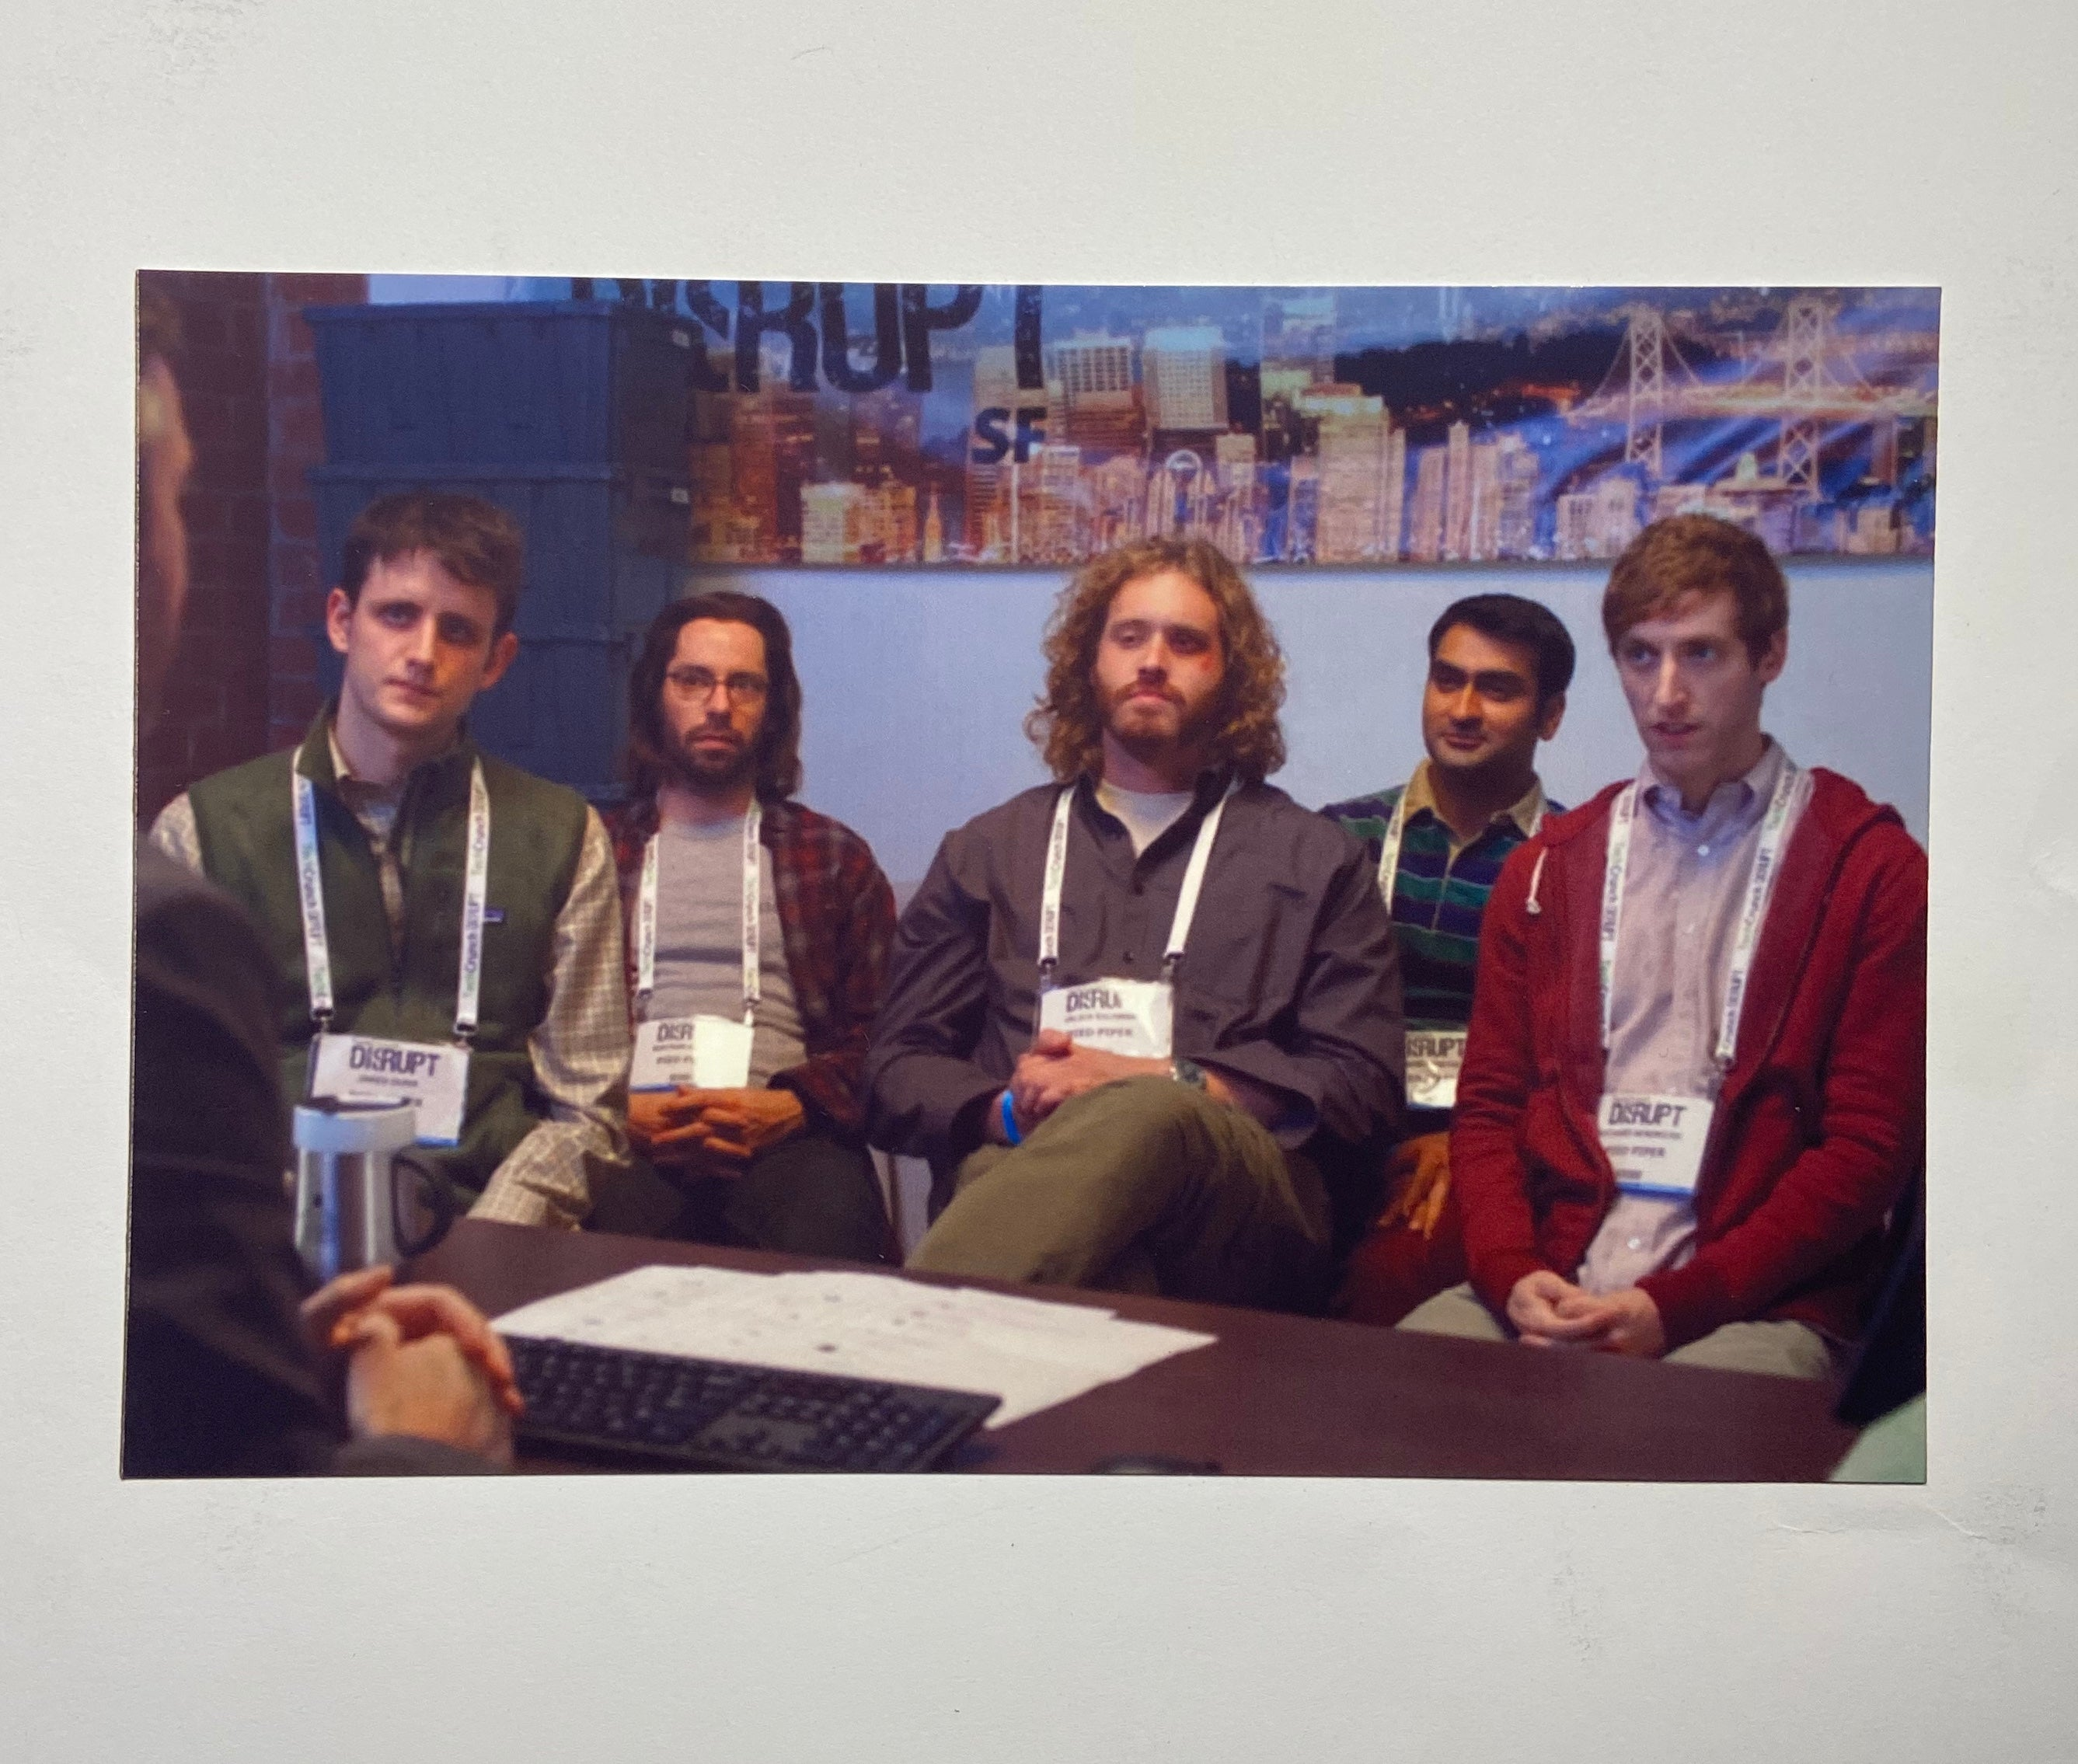 SILICON VALLEY: Photo of the Pied Piper Crew at TechCrunch Disrupt